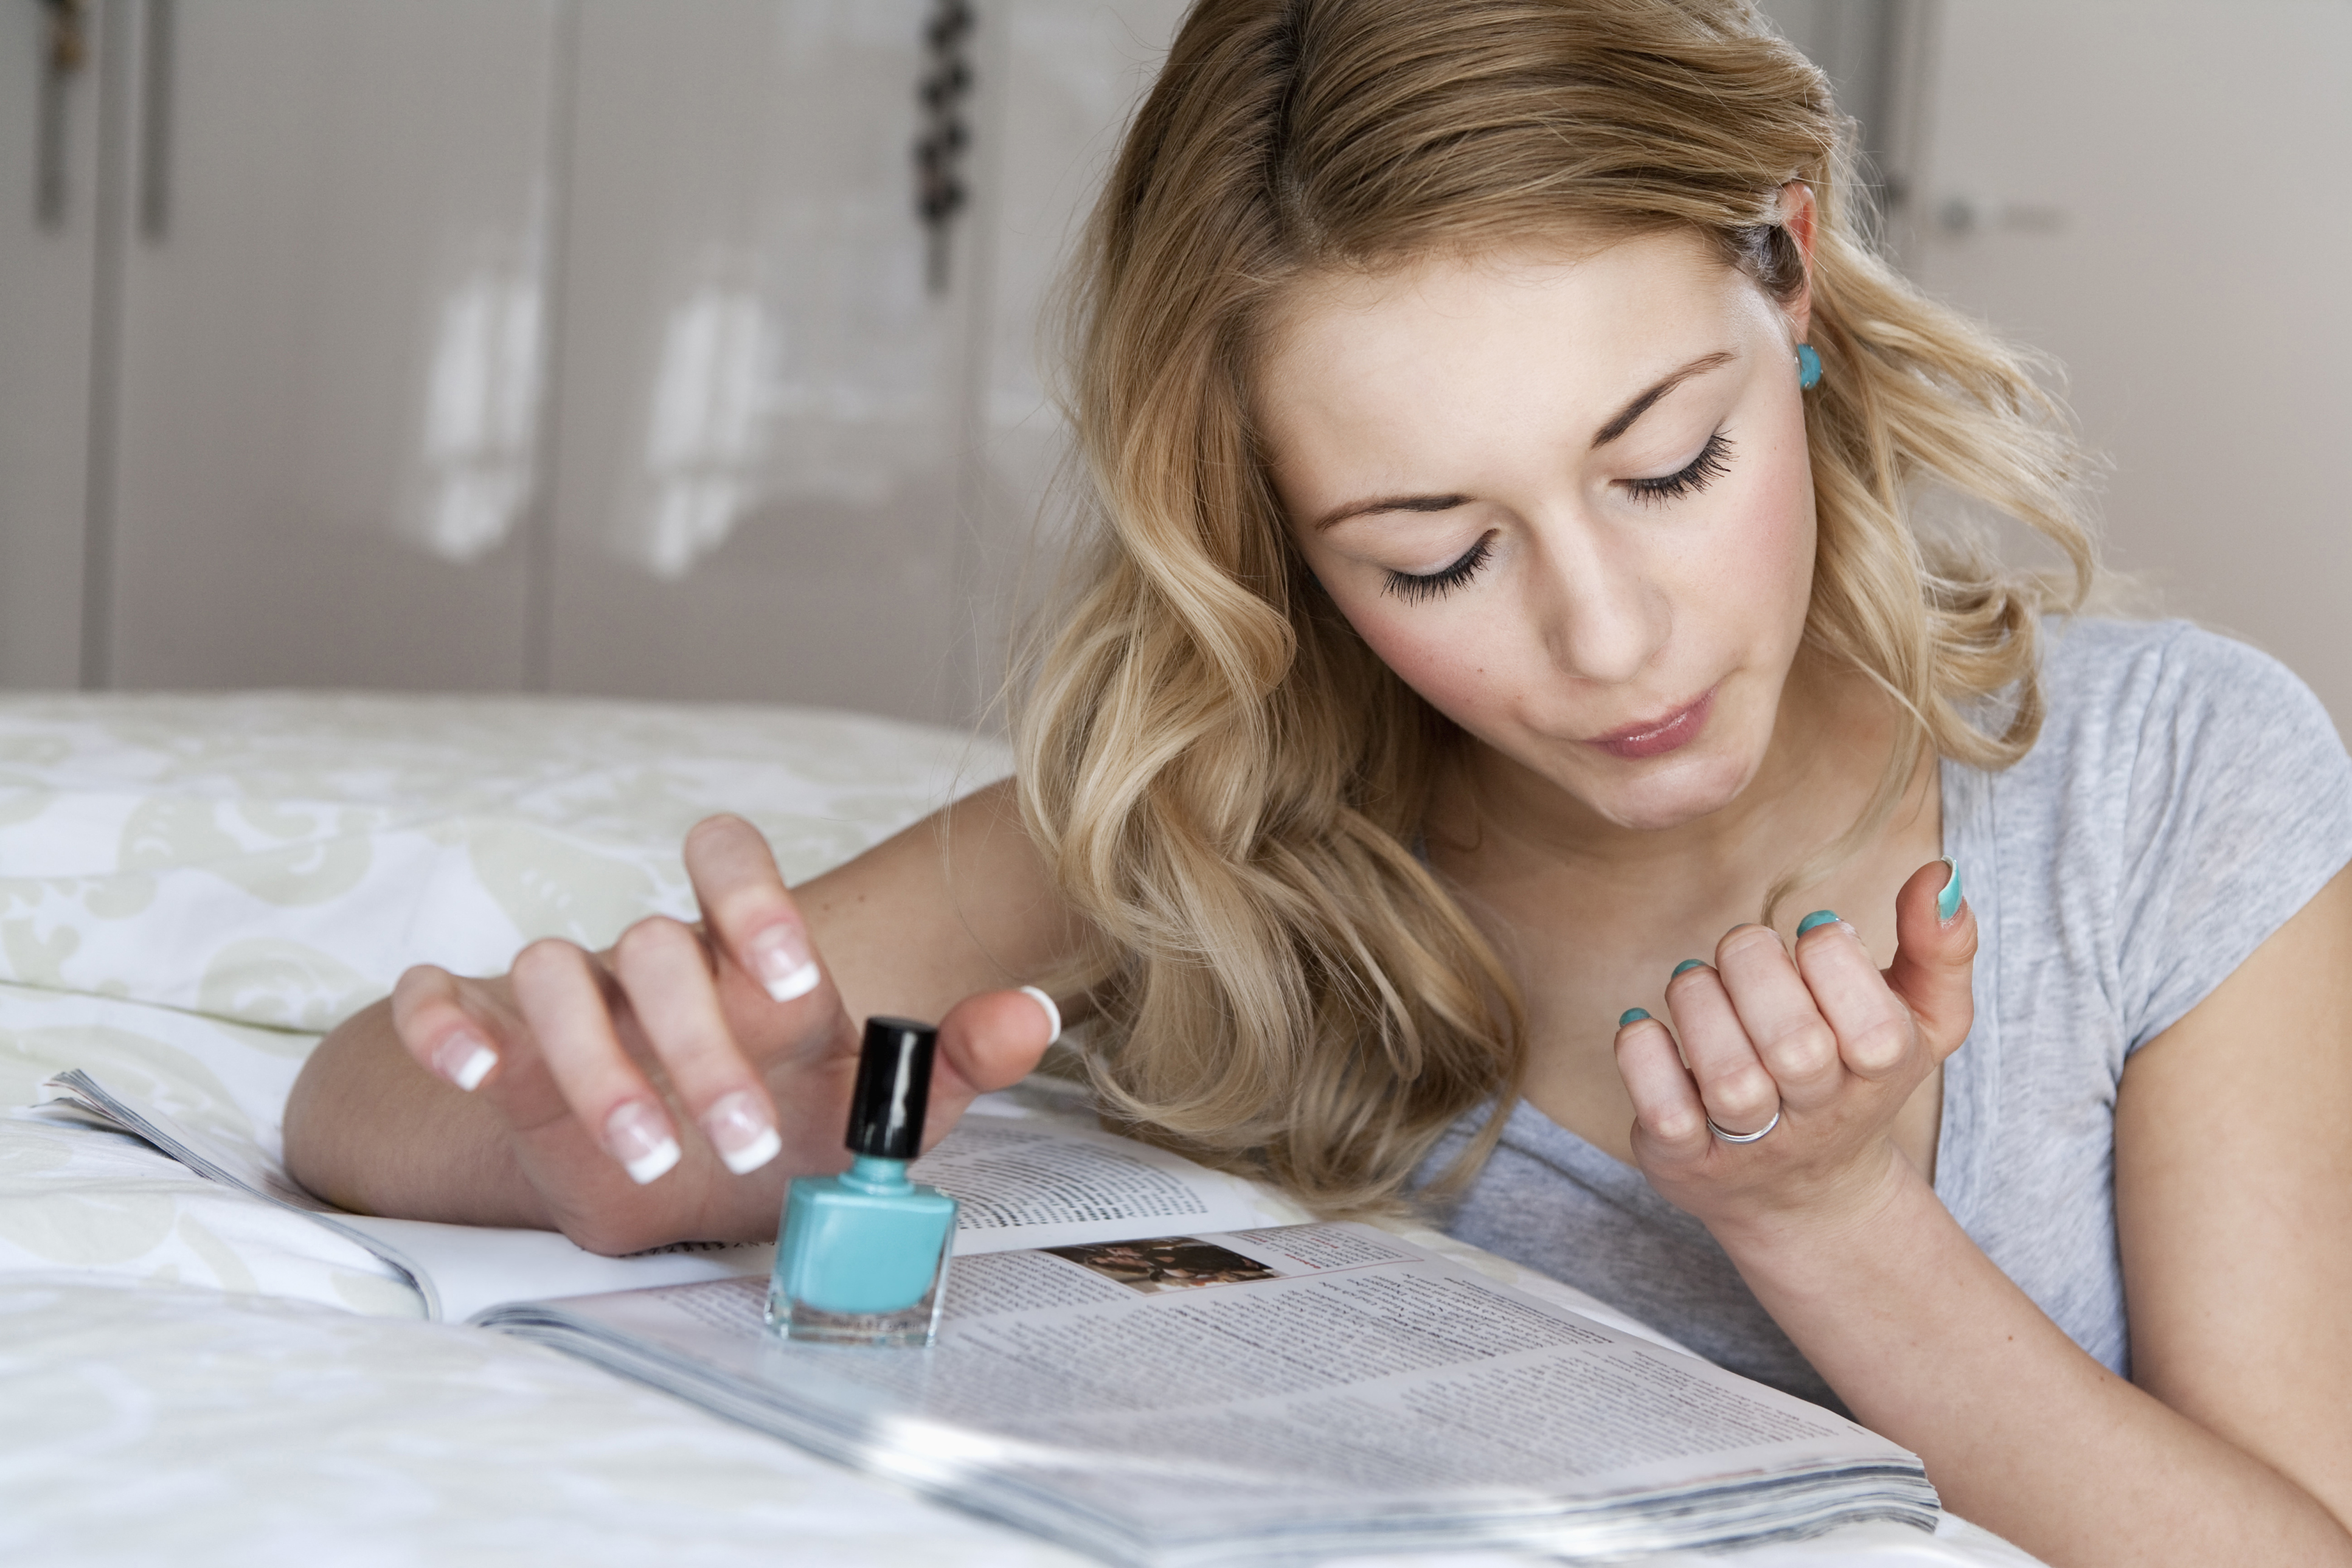 How to Make Nails Dry Faster   StyleCaster